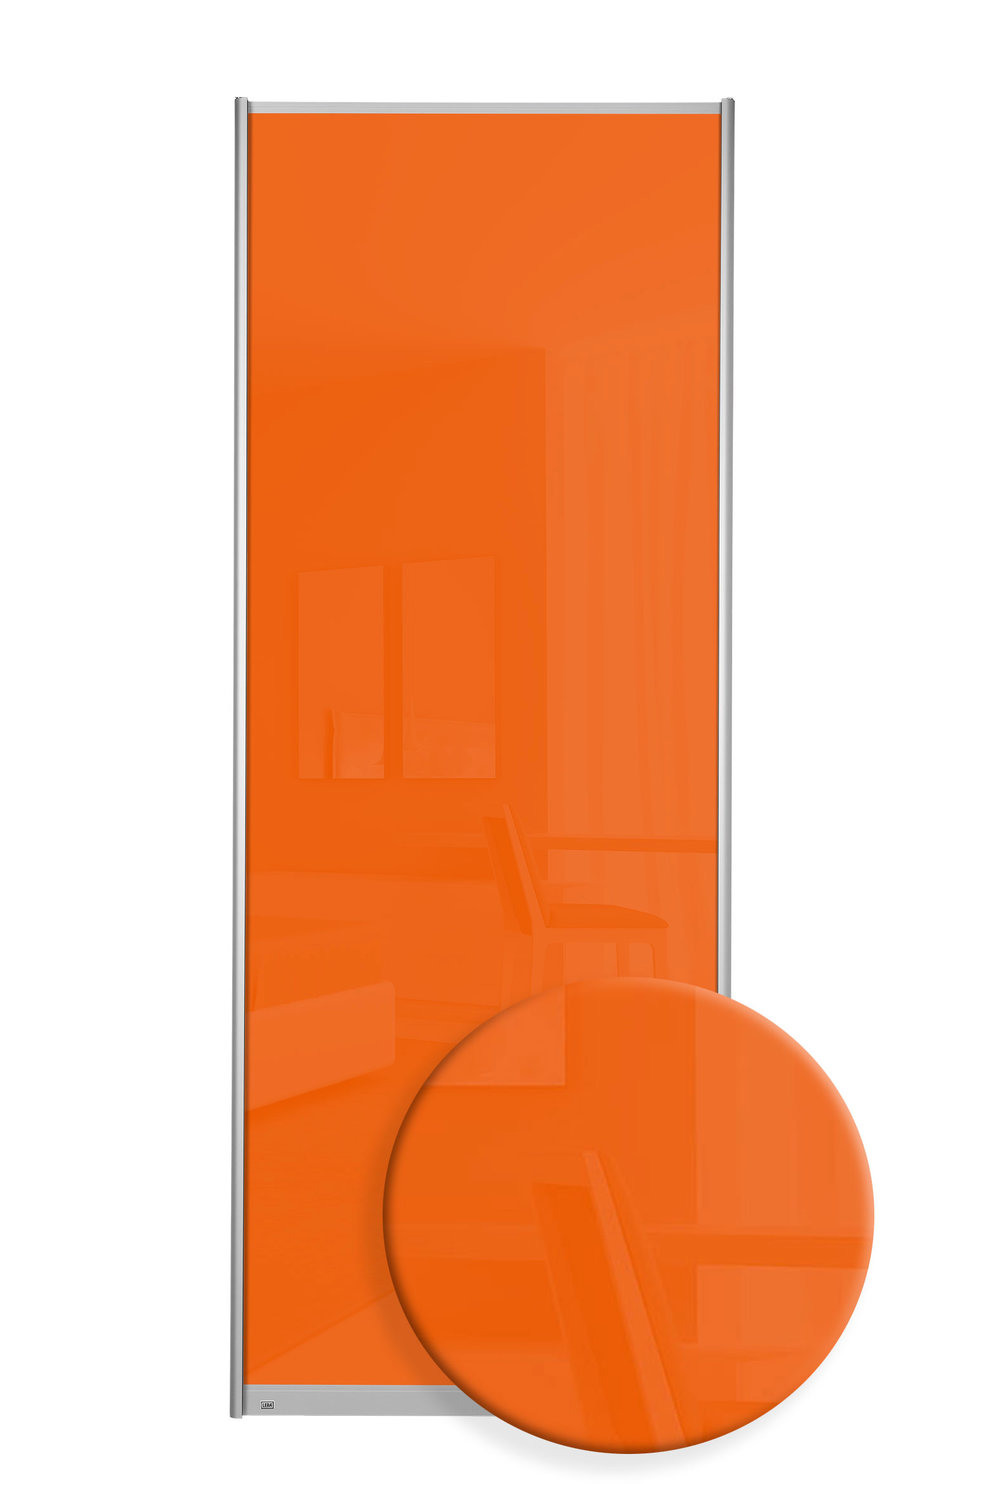 F7112 - Orange glass